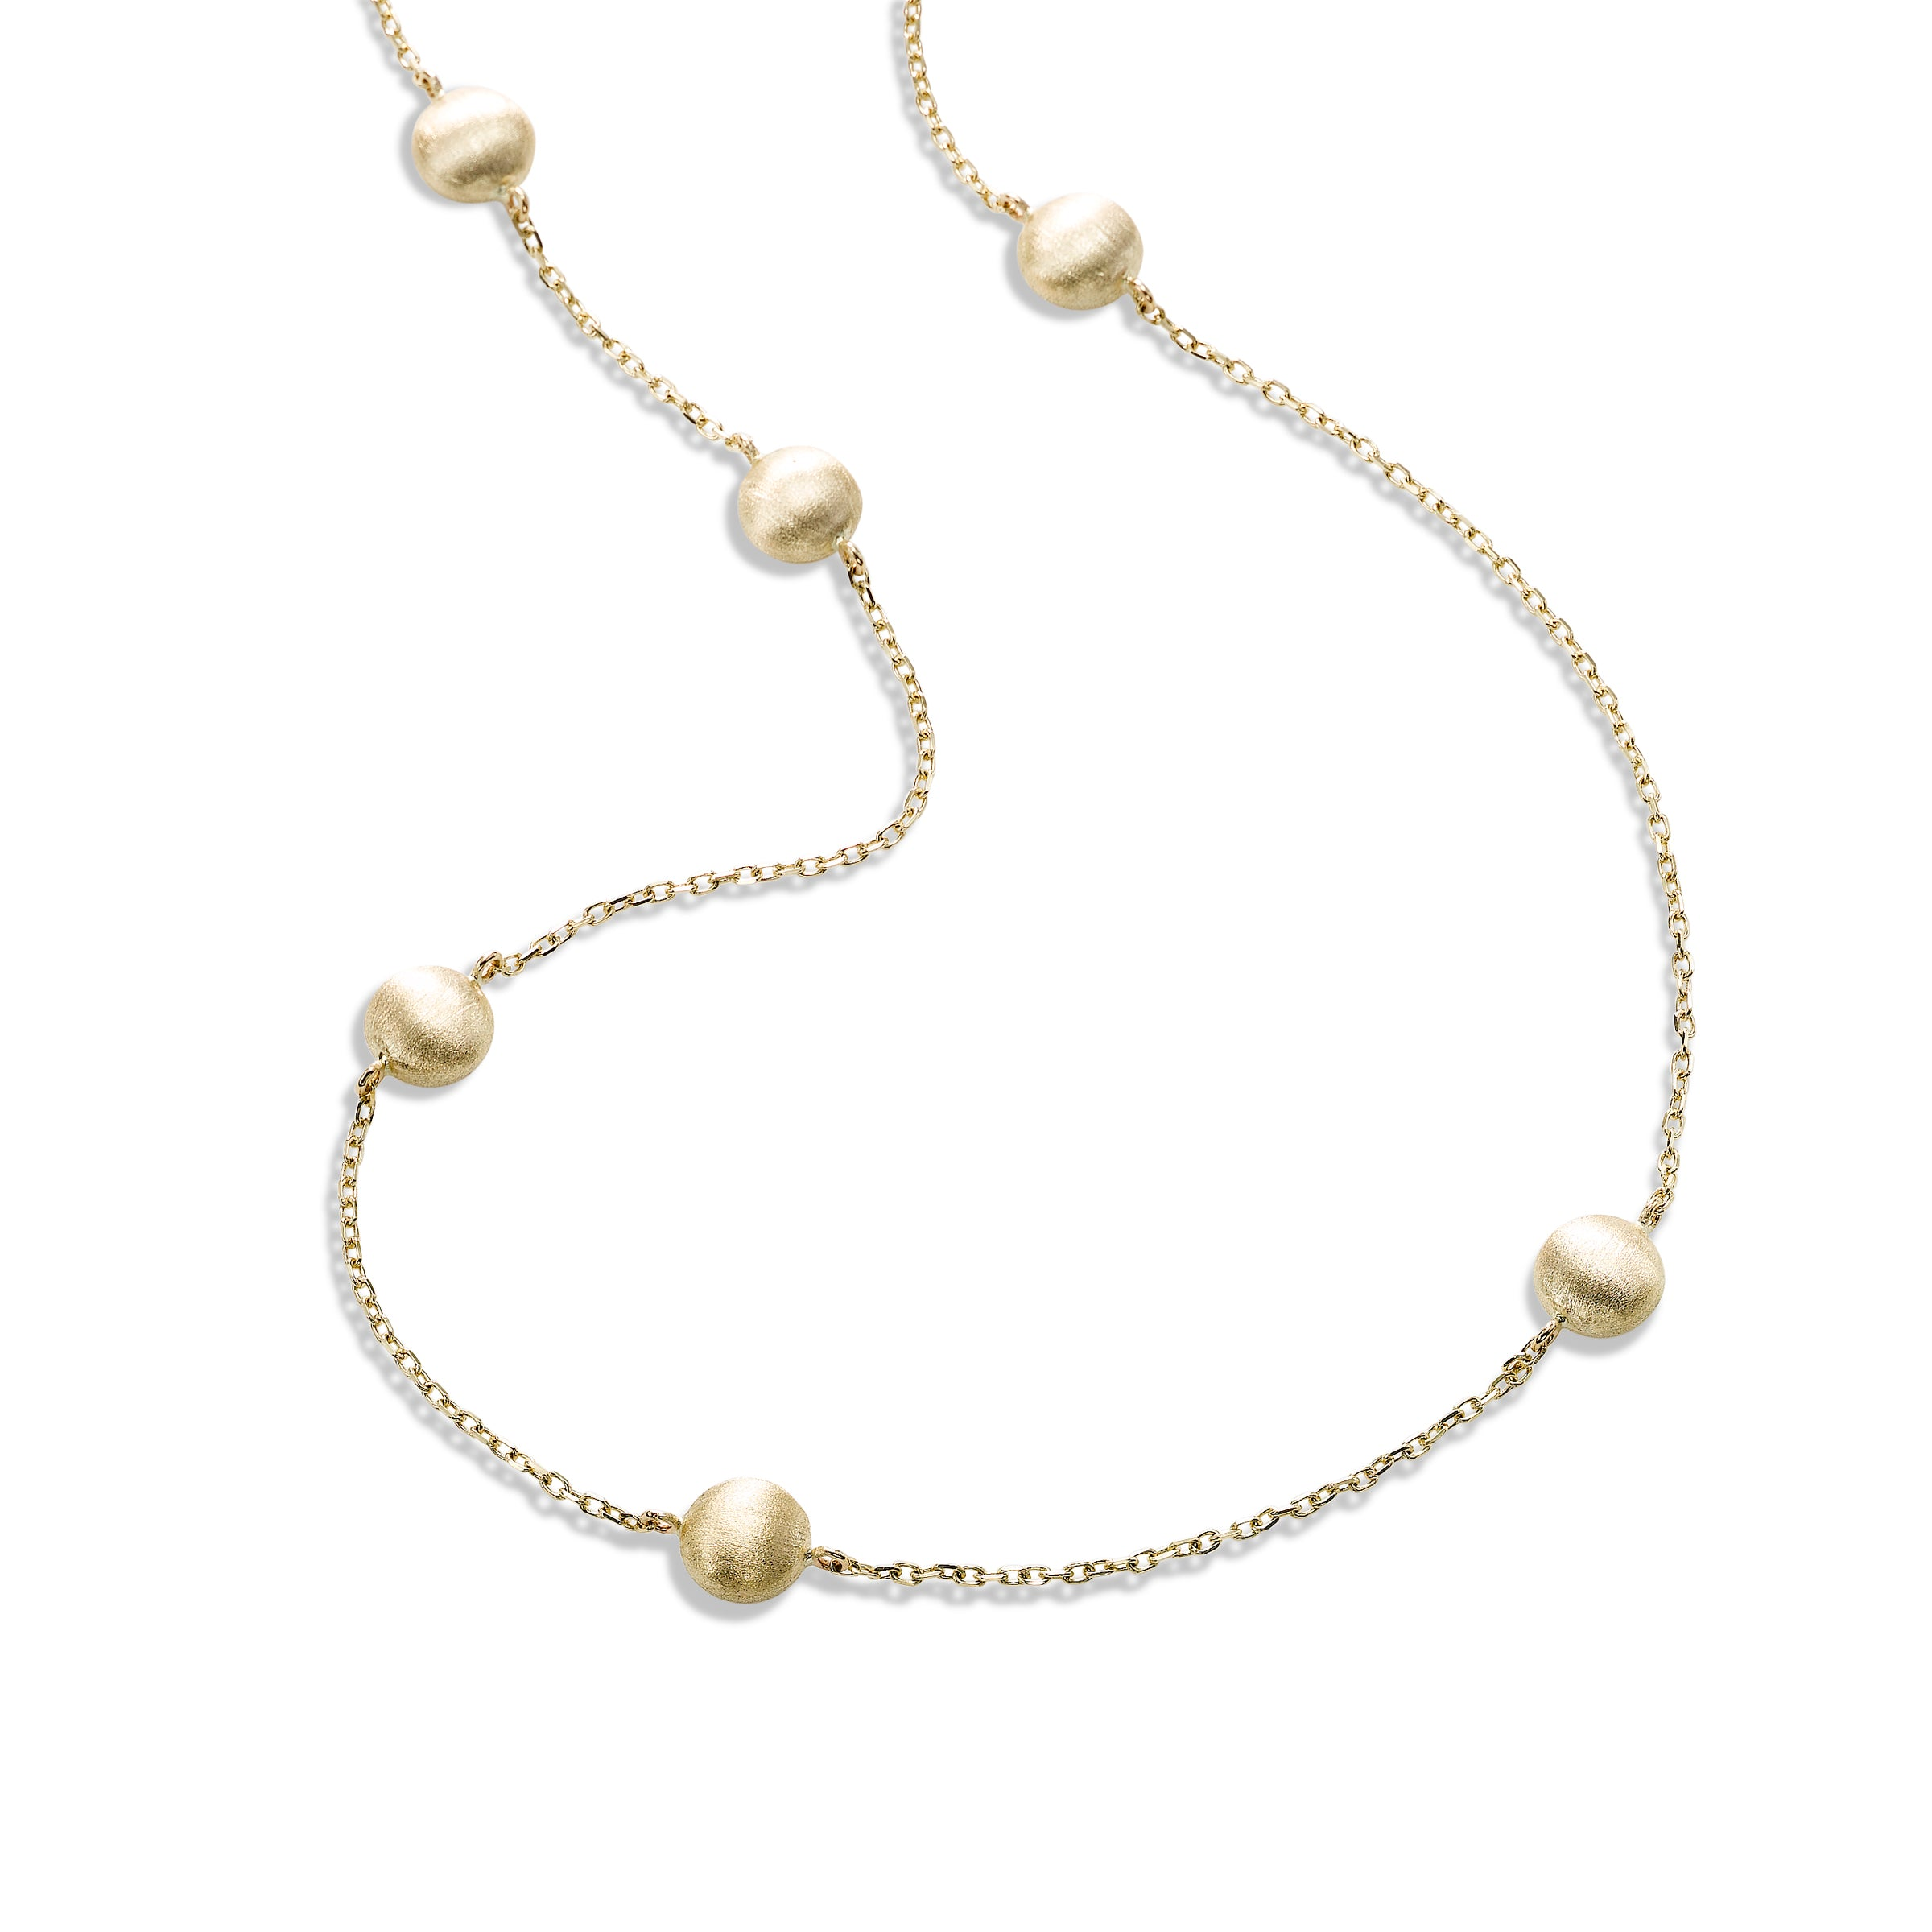 Satin Finish Bead Station Necklace, 36 Inches, 14K Yellow Gold